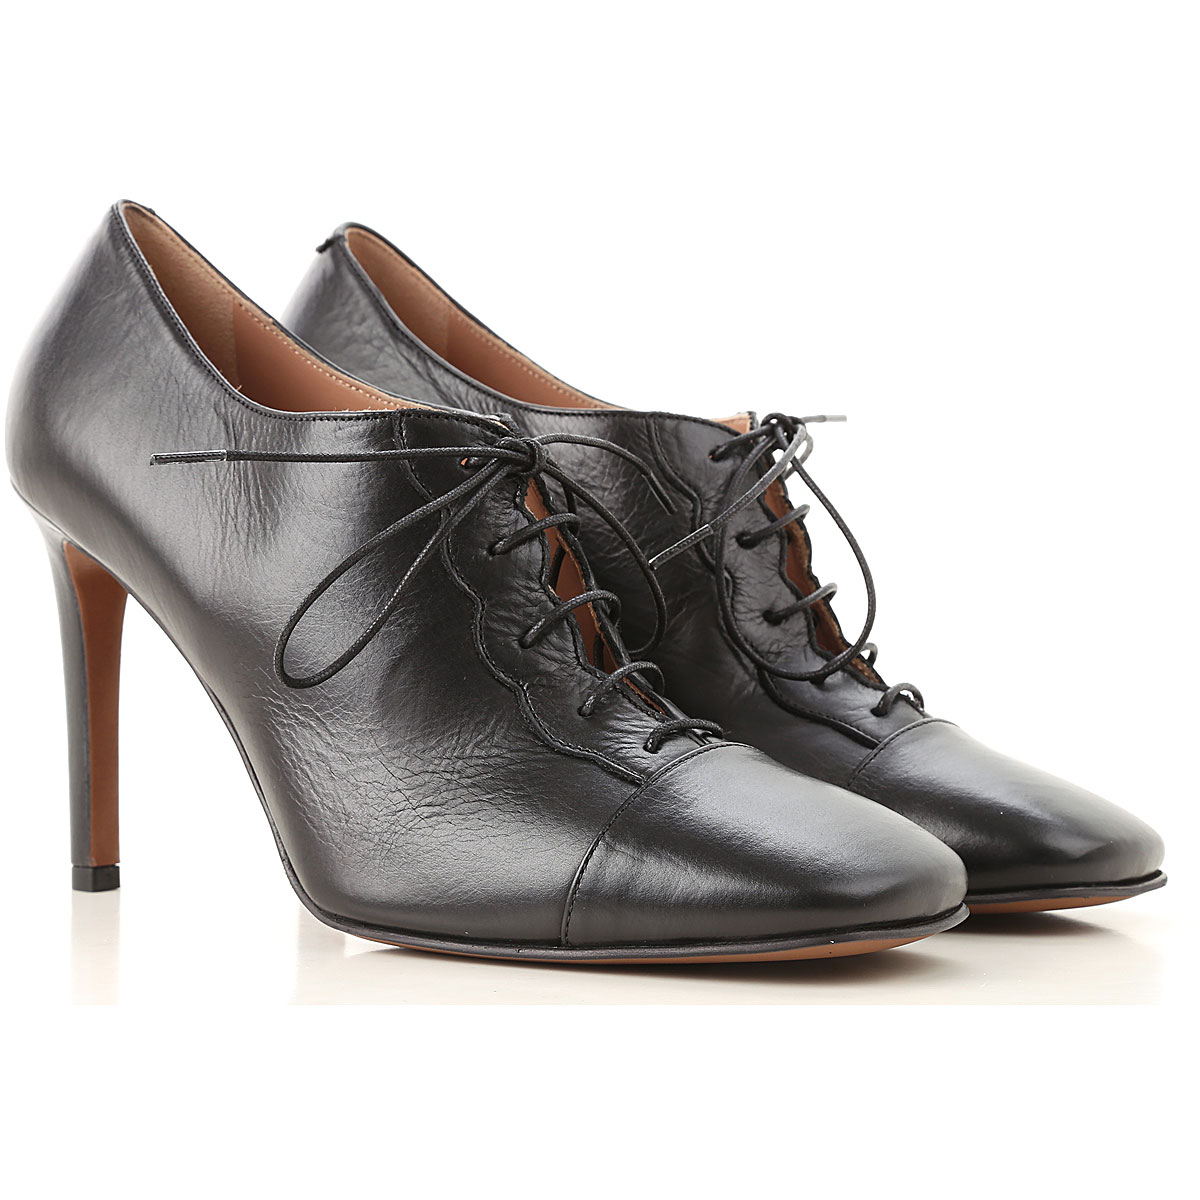 Lautre Chose Pumps & High Heels for Women On Sale in Outlet, Black, Leather, 2019, 10 6.5 7 8 8.5 9